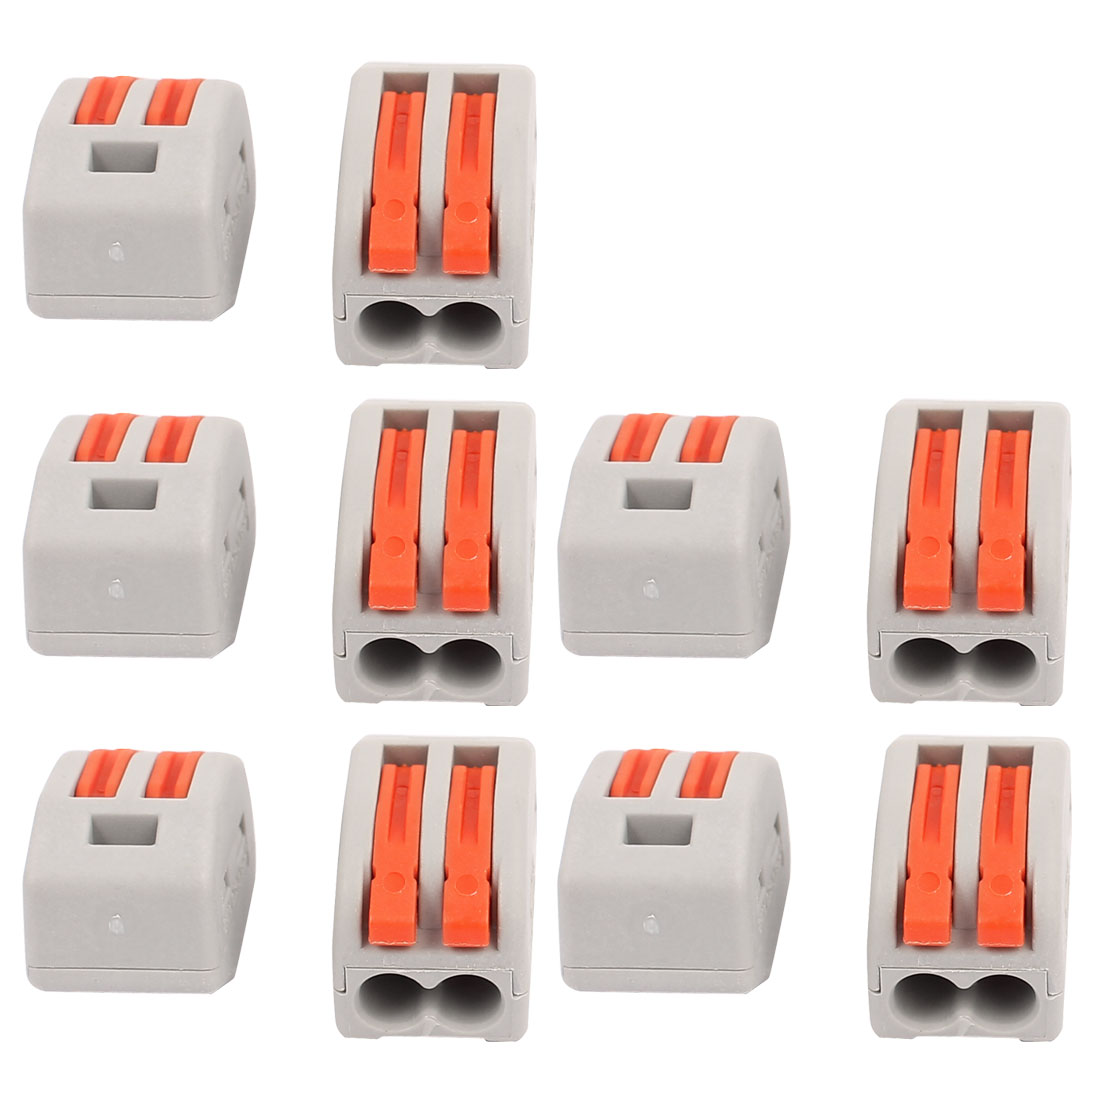 10 Pcs AC 250V 20A Lever Lock Clamp 2 Pins 2 Ports Terminal Block 0.75-2.5mm2 Orange